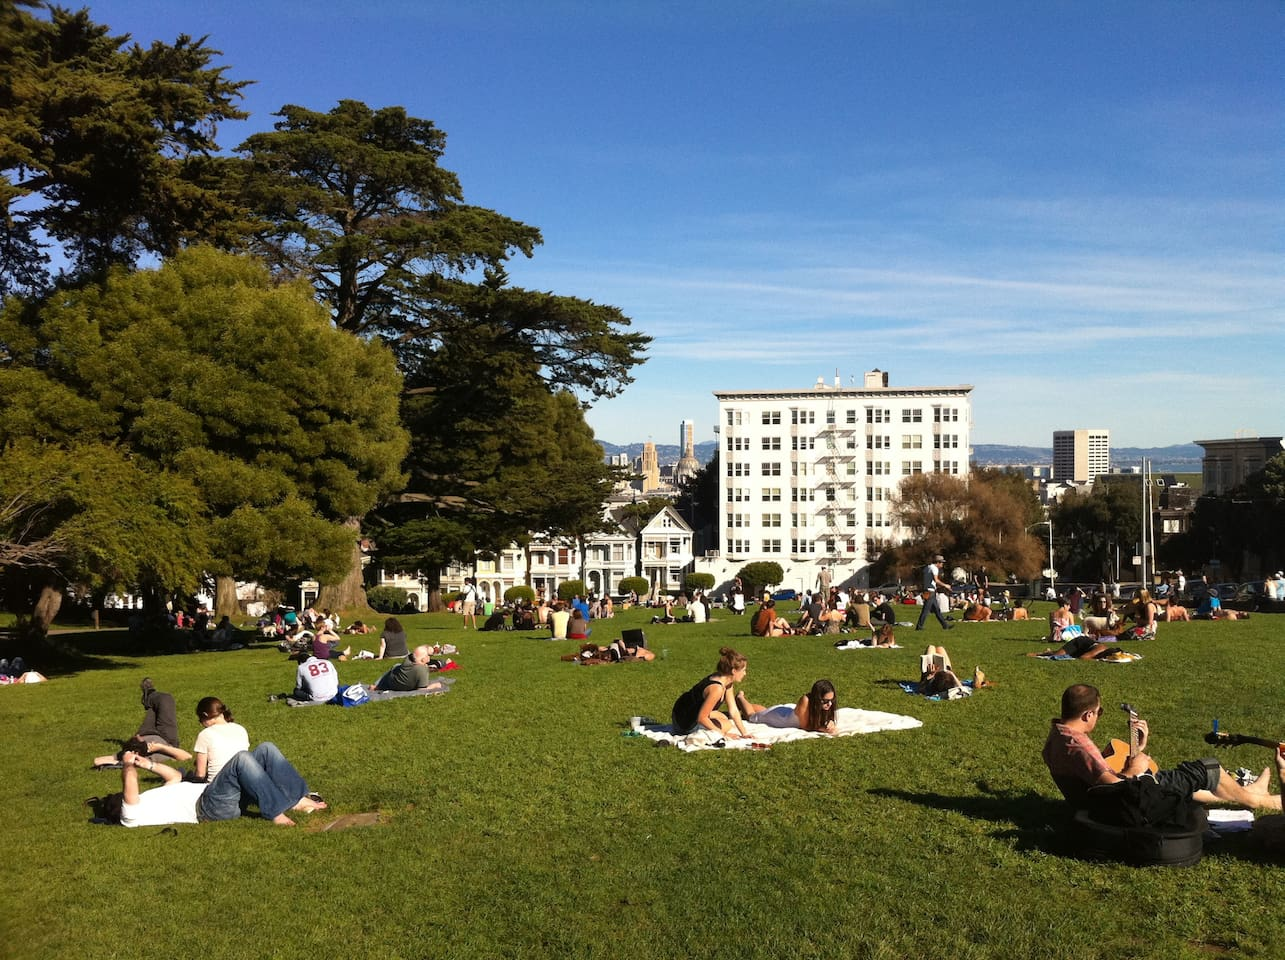 Alamo Square with painted ladies in background.